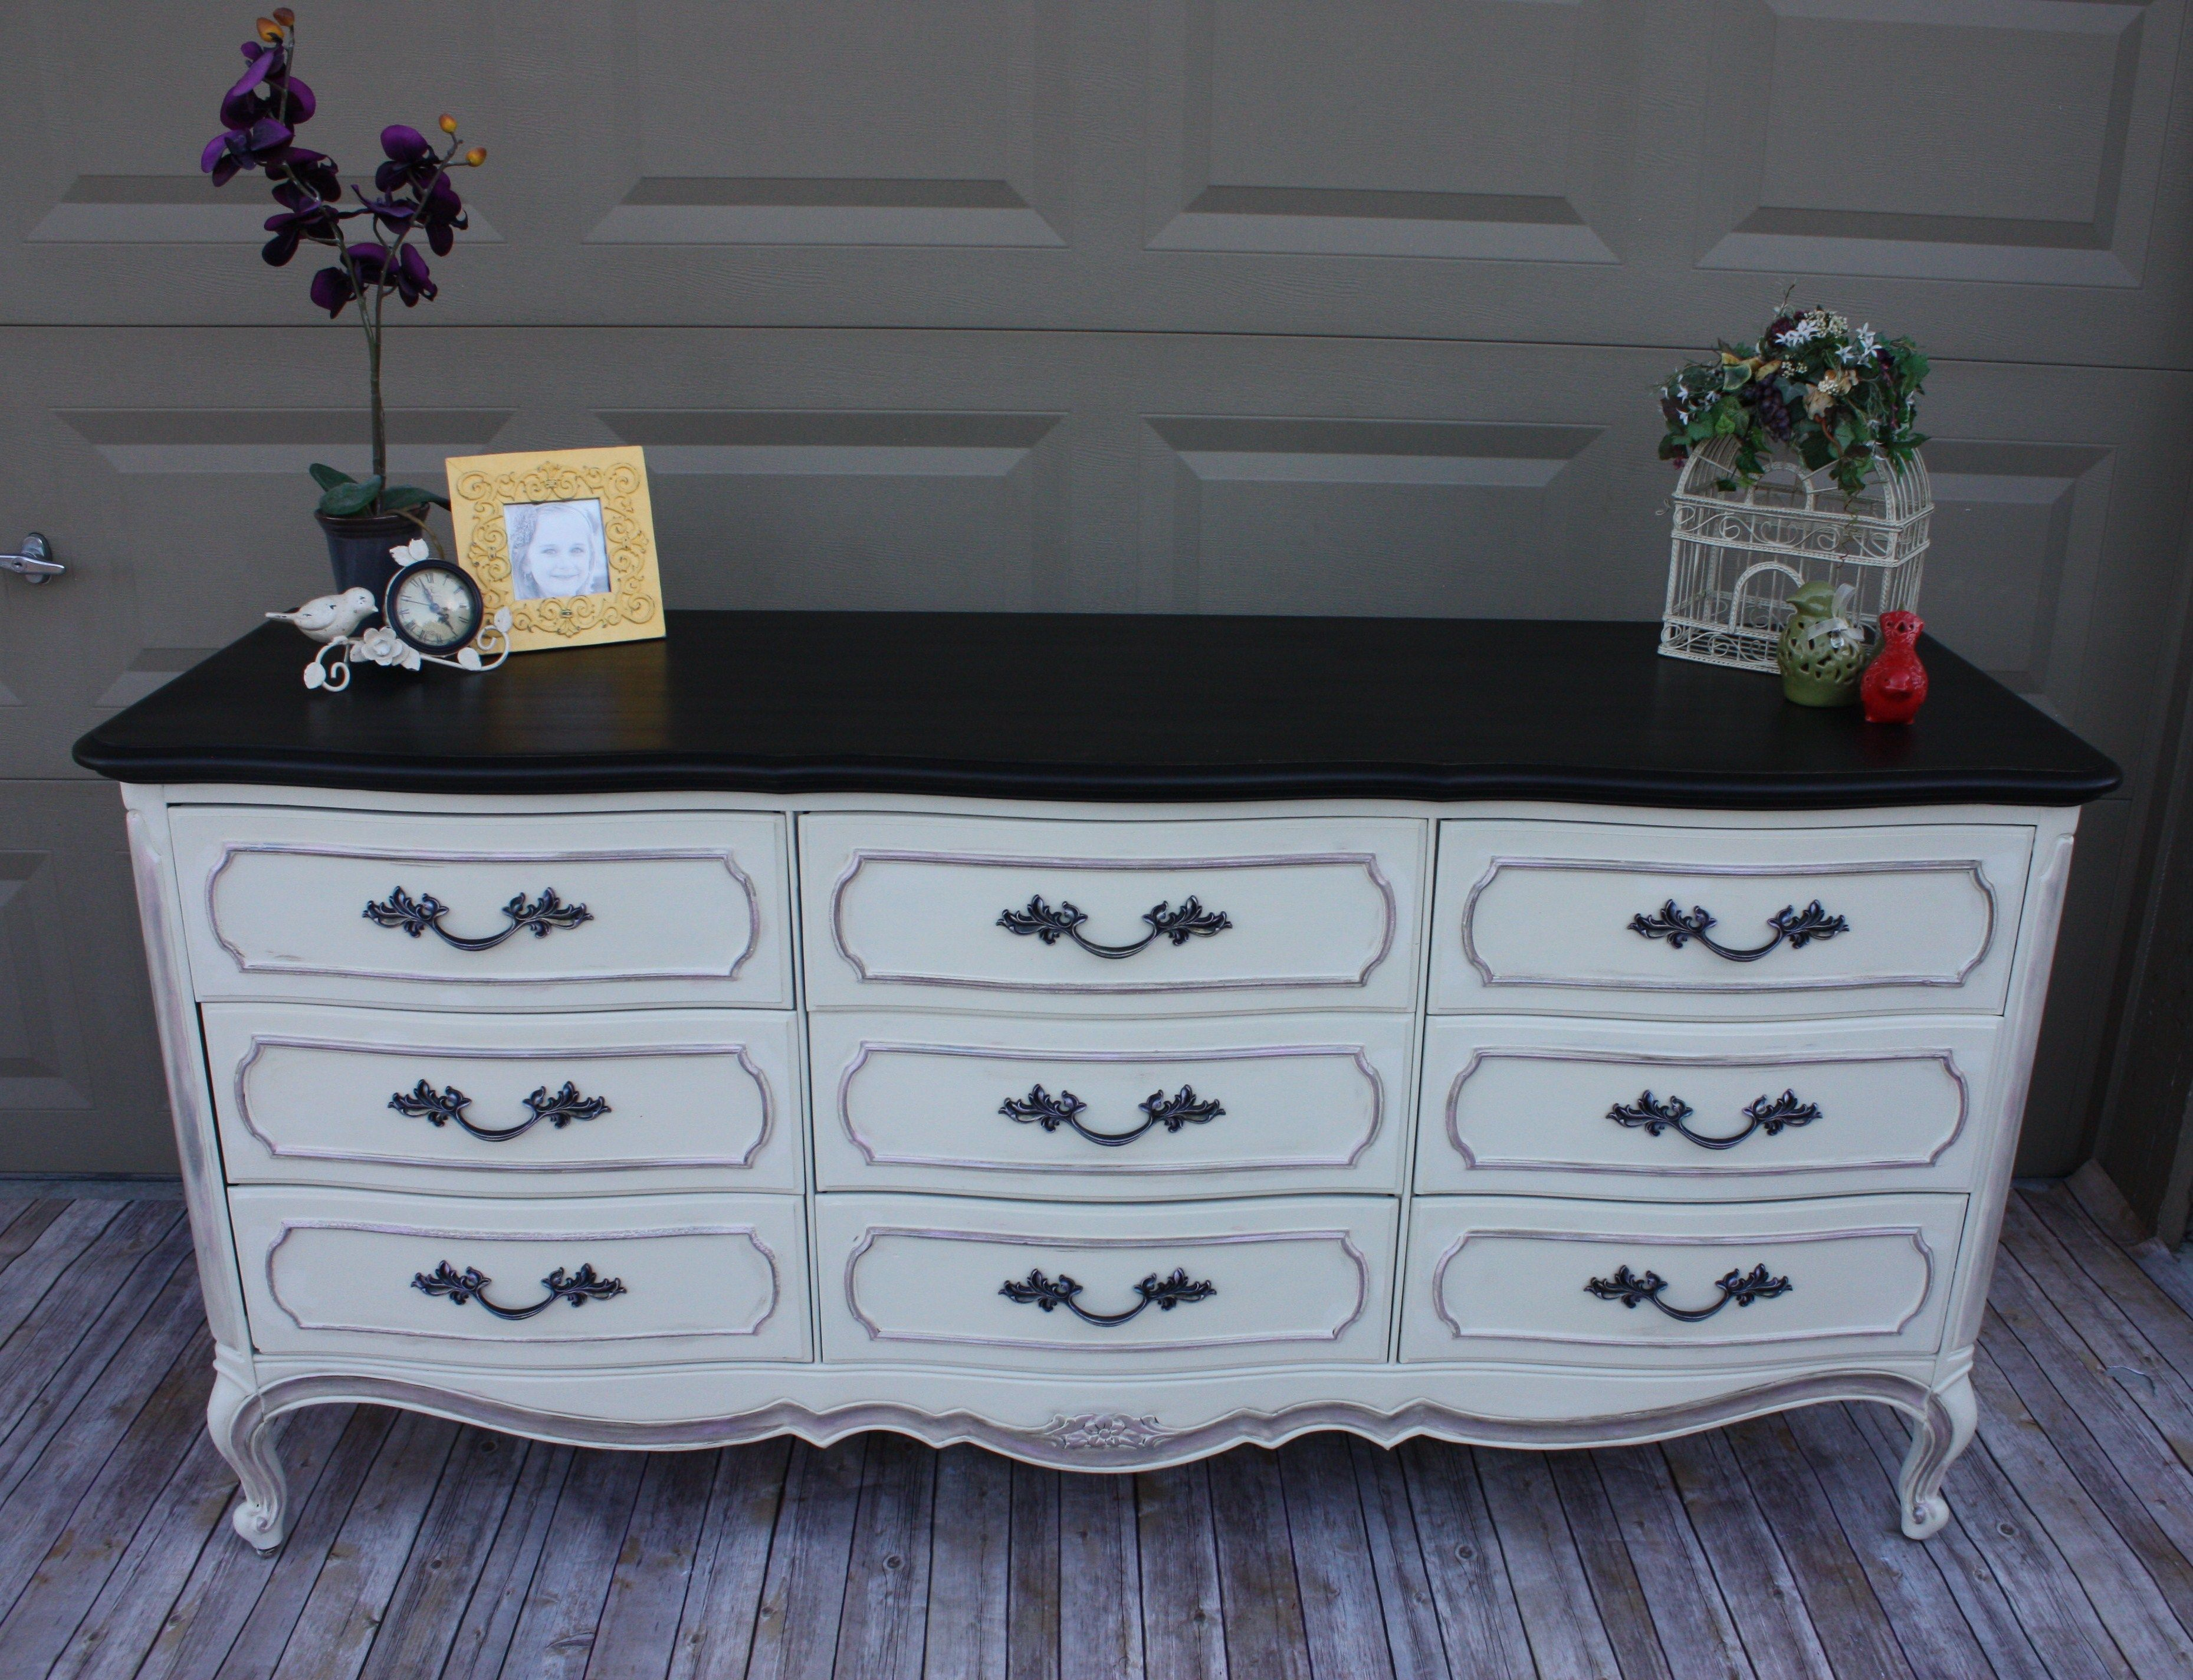 a dresser deal how dressers to on refinishing scoring refinish campclem furniture phone piece score craigslist hope and